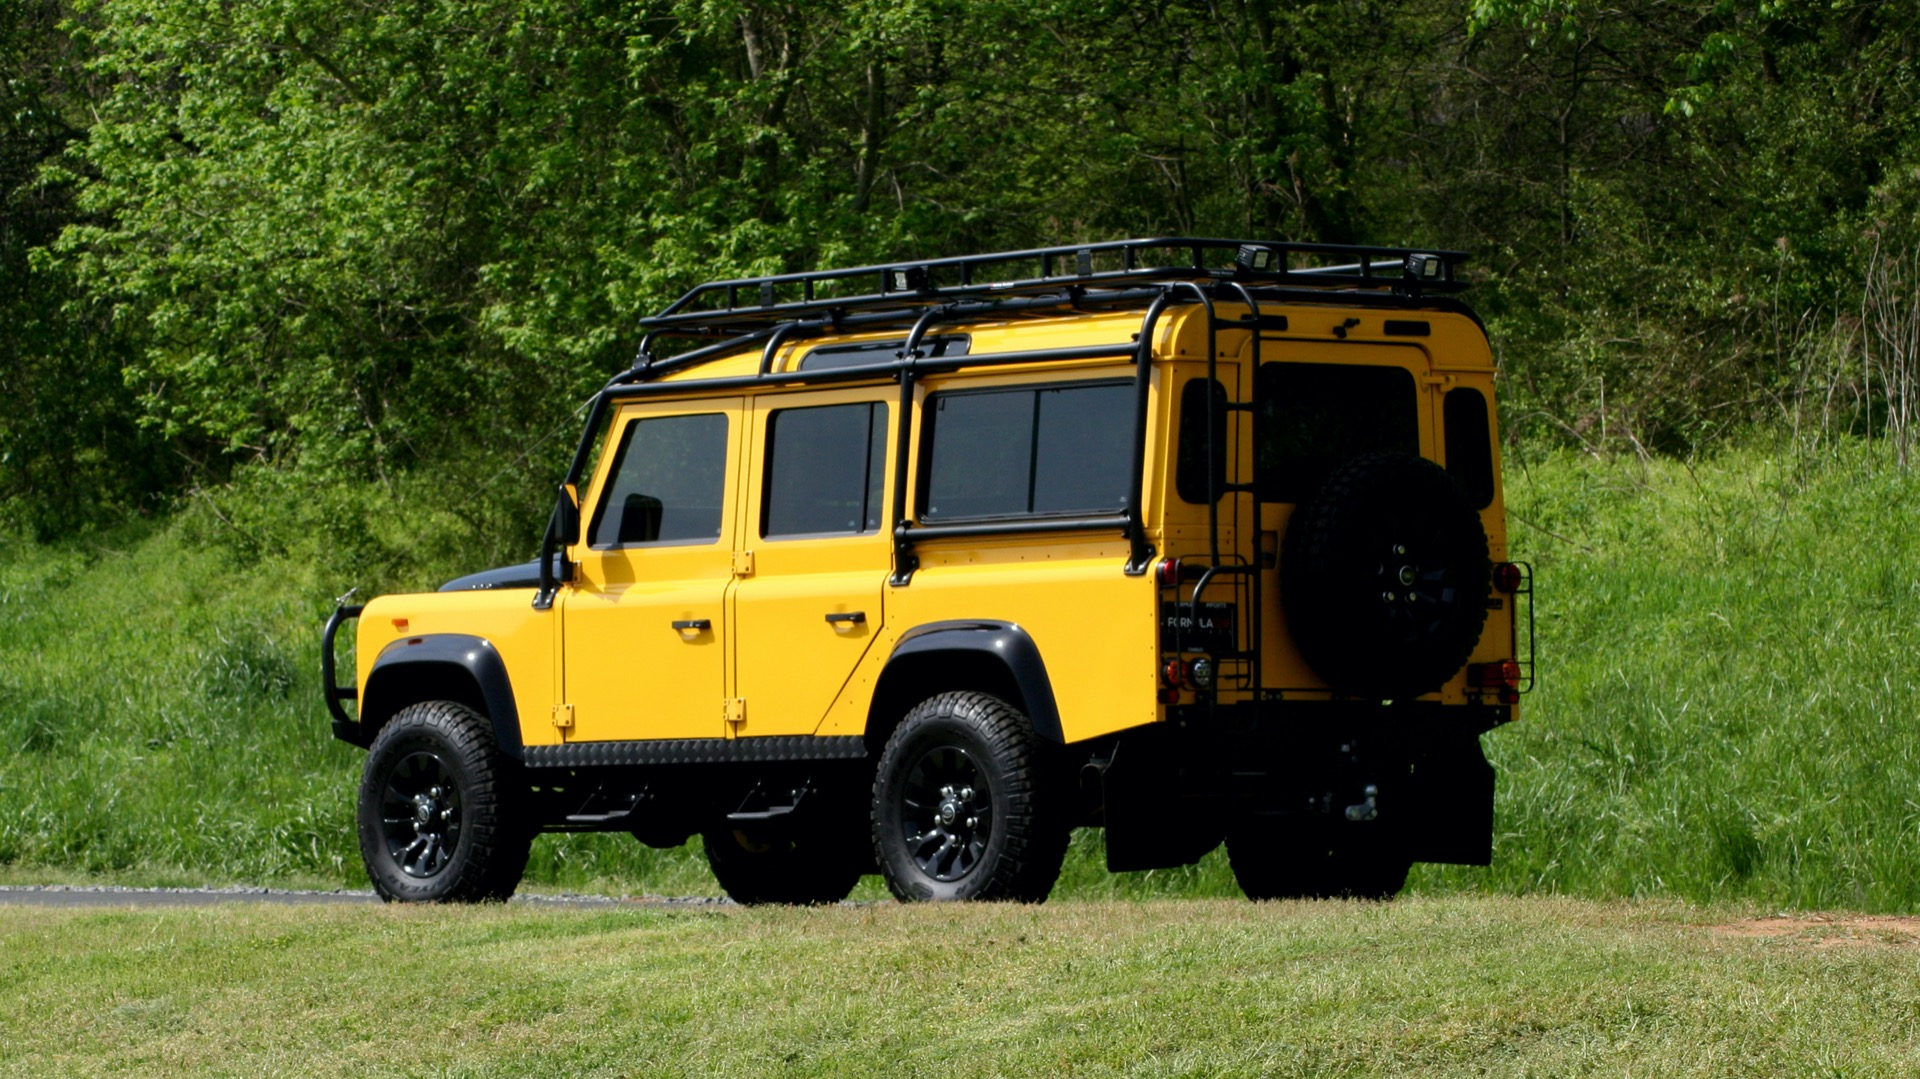 Used 1989 Land Rover Defender 110 4x4 Custom / Fully Restored / Fuel Injected V8 / 5-Spd Man for sale $60,000 at Formula Imports in Charlotte NC 28227 6